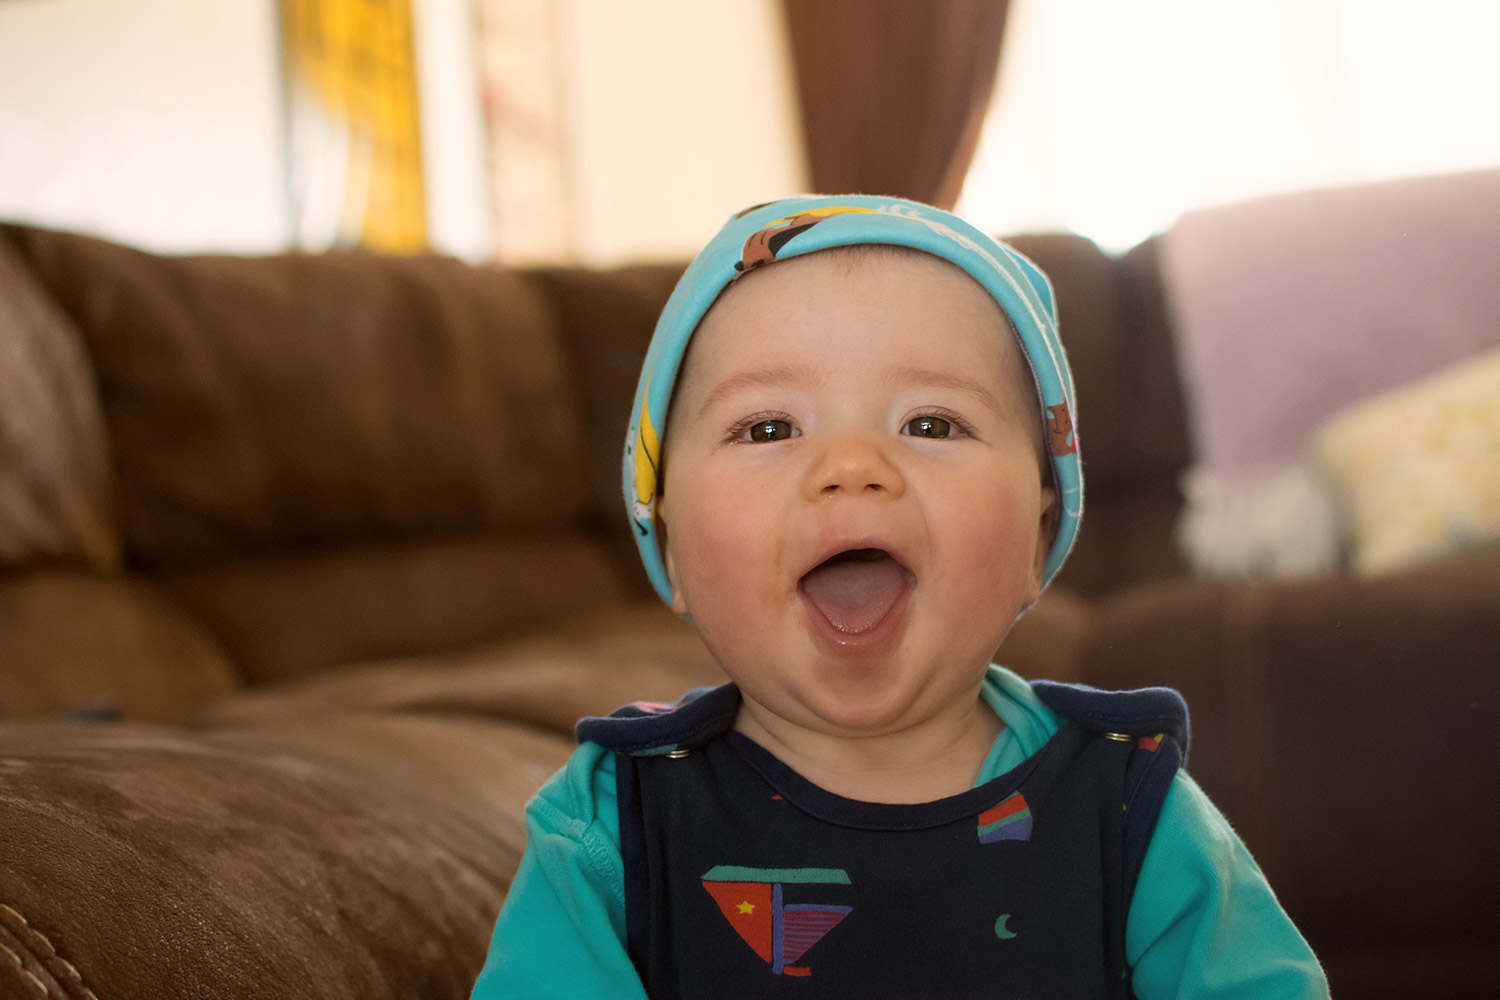 Baby Jesse Blue at 10 months old - Baby boy wearing Joules doggy print hat and Piccalilly lighthouse romper smiling and laughing at the camera whilst standing